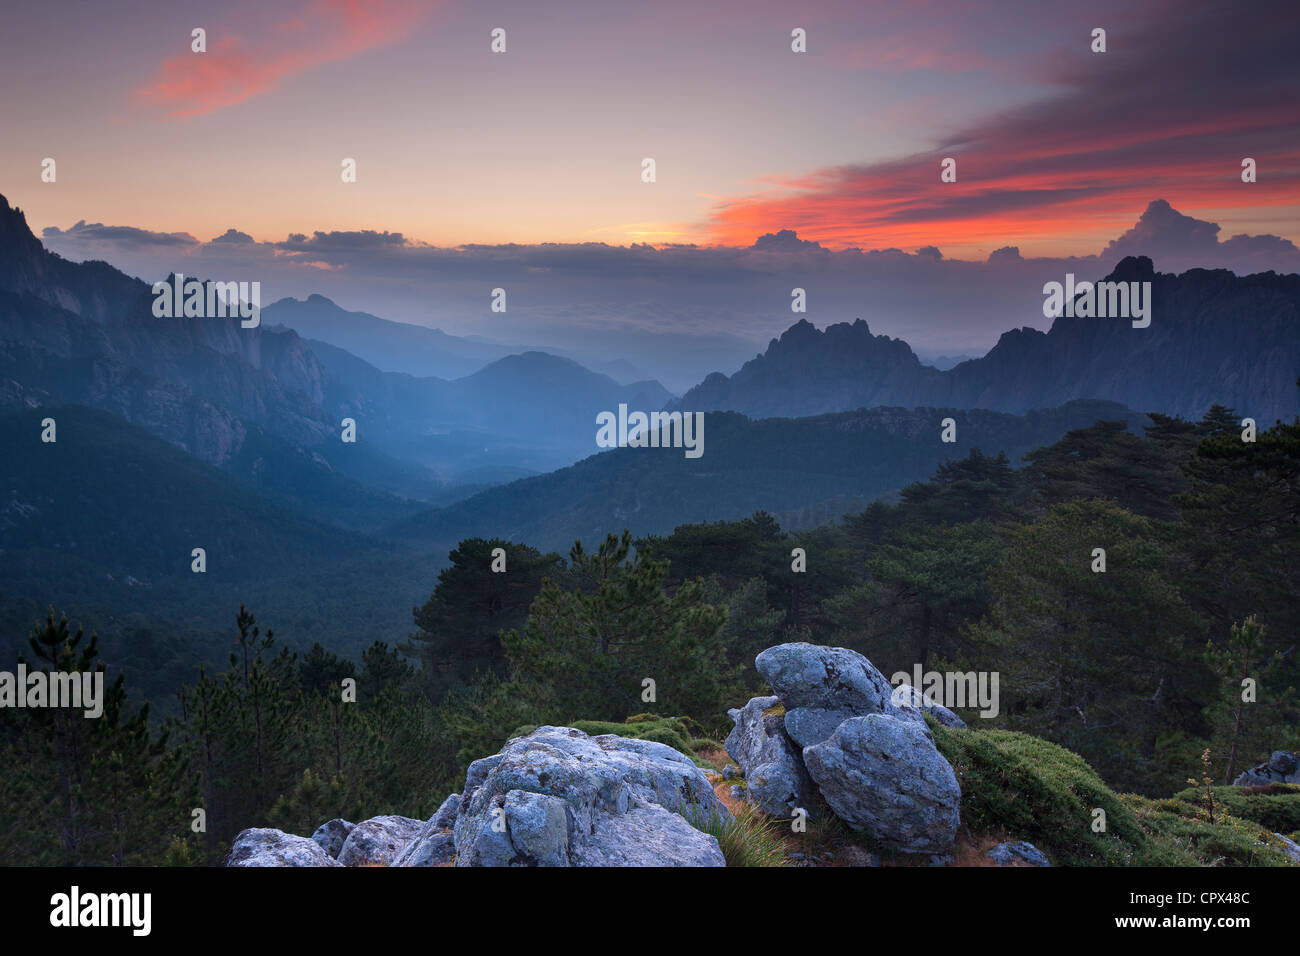 the Col de Bavella at dawn, Bavella Mountains, Corsica, France Stock Photo